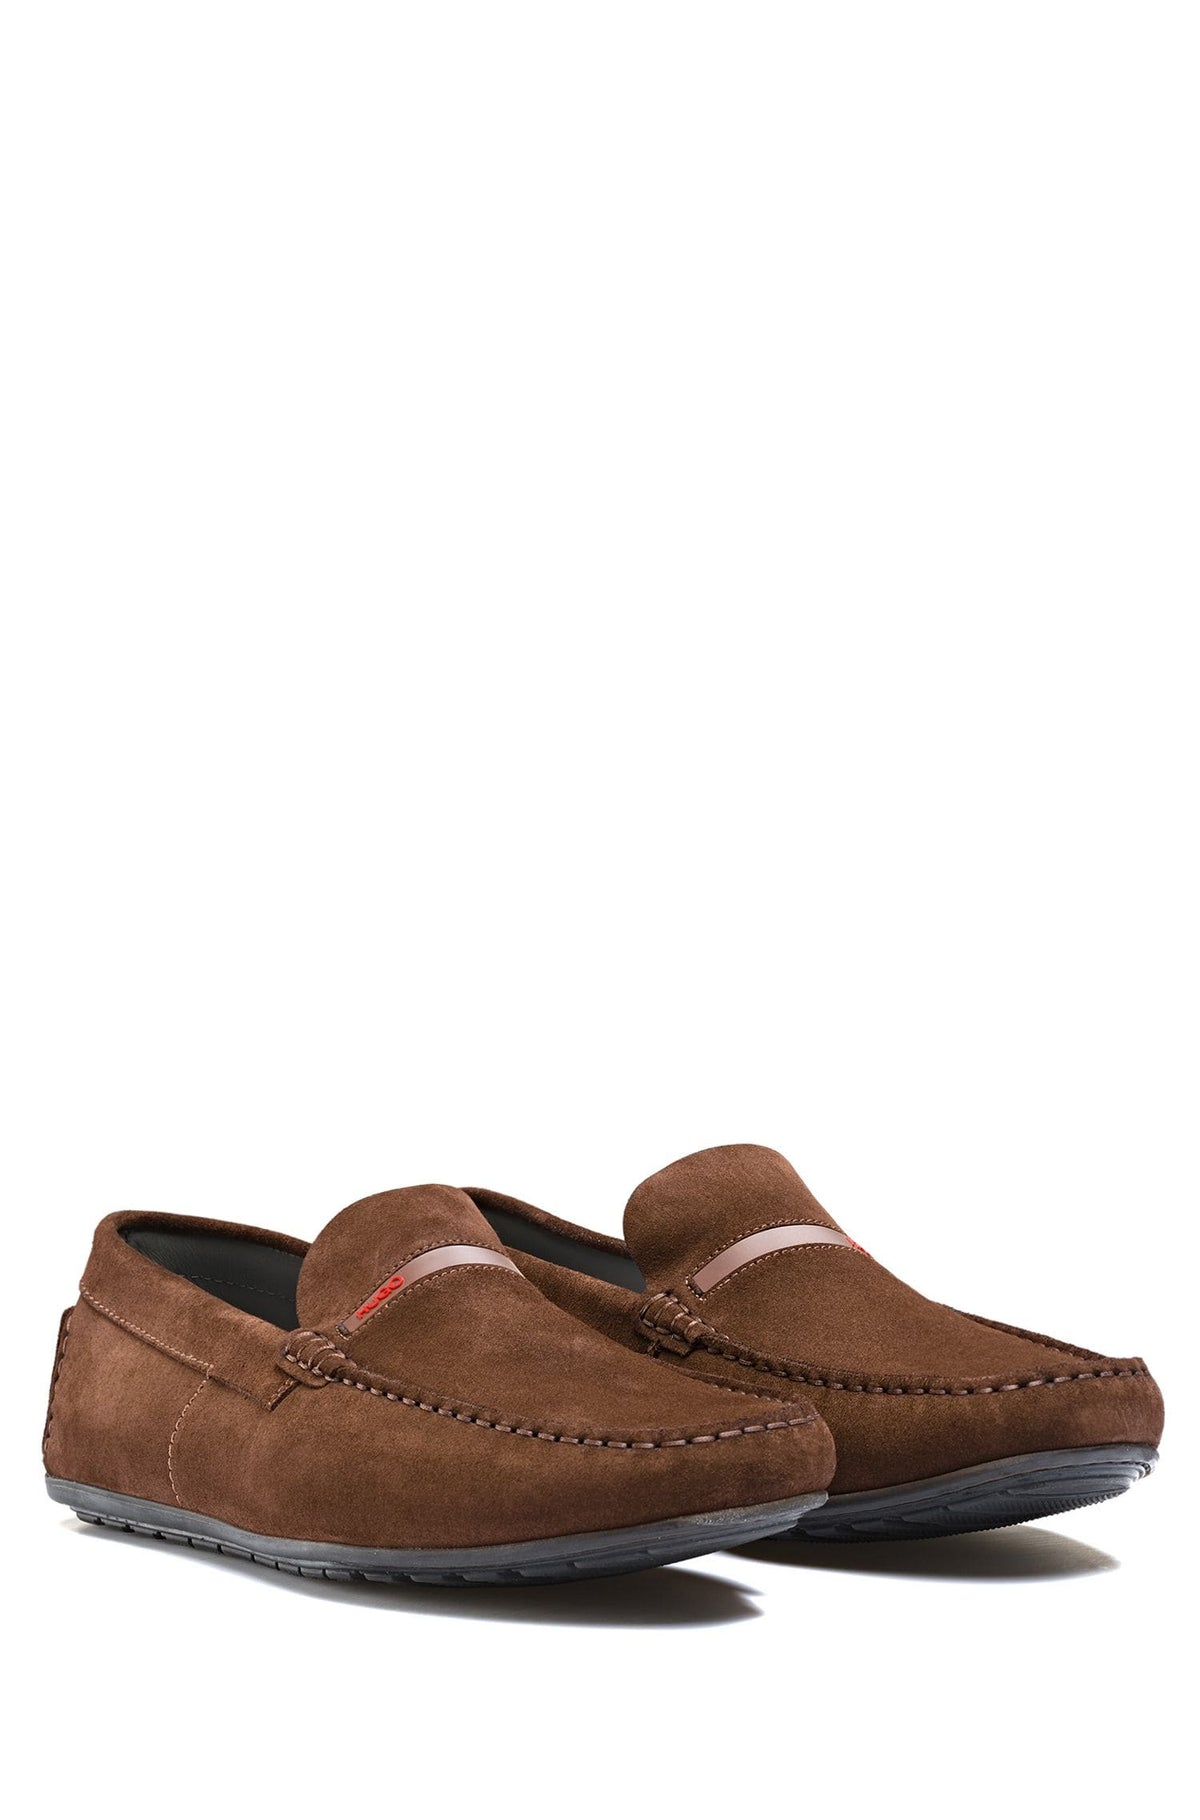 HUGO Hugo Boss Suede Moccasins With Logo Trim